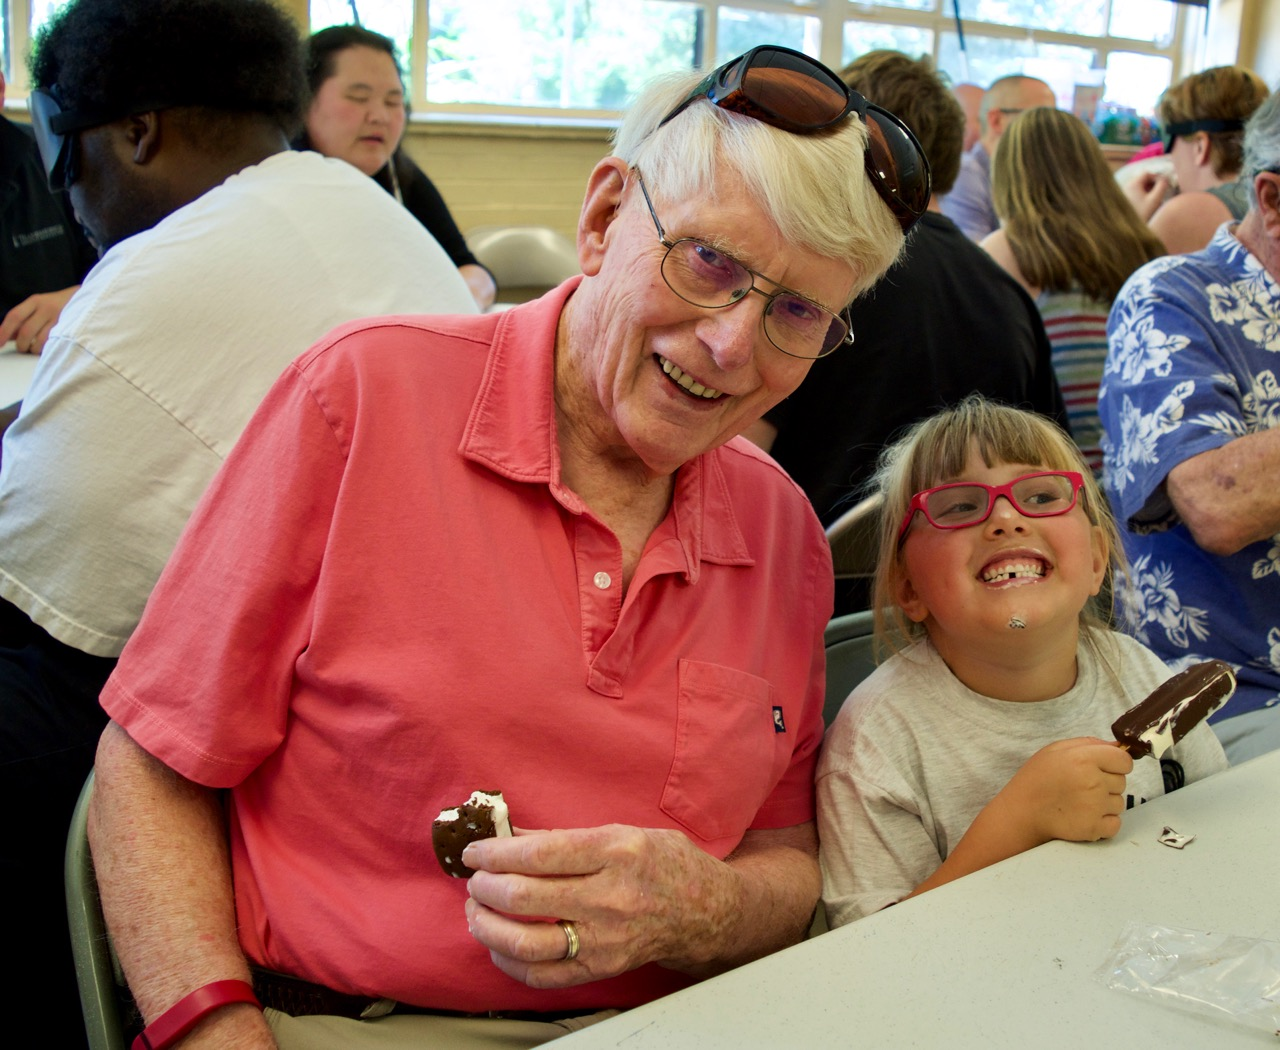 A man in his eighties sits beside a 6-year-old girl, both enjoying ice cream